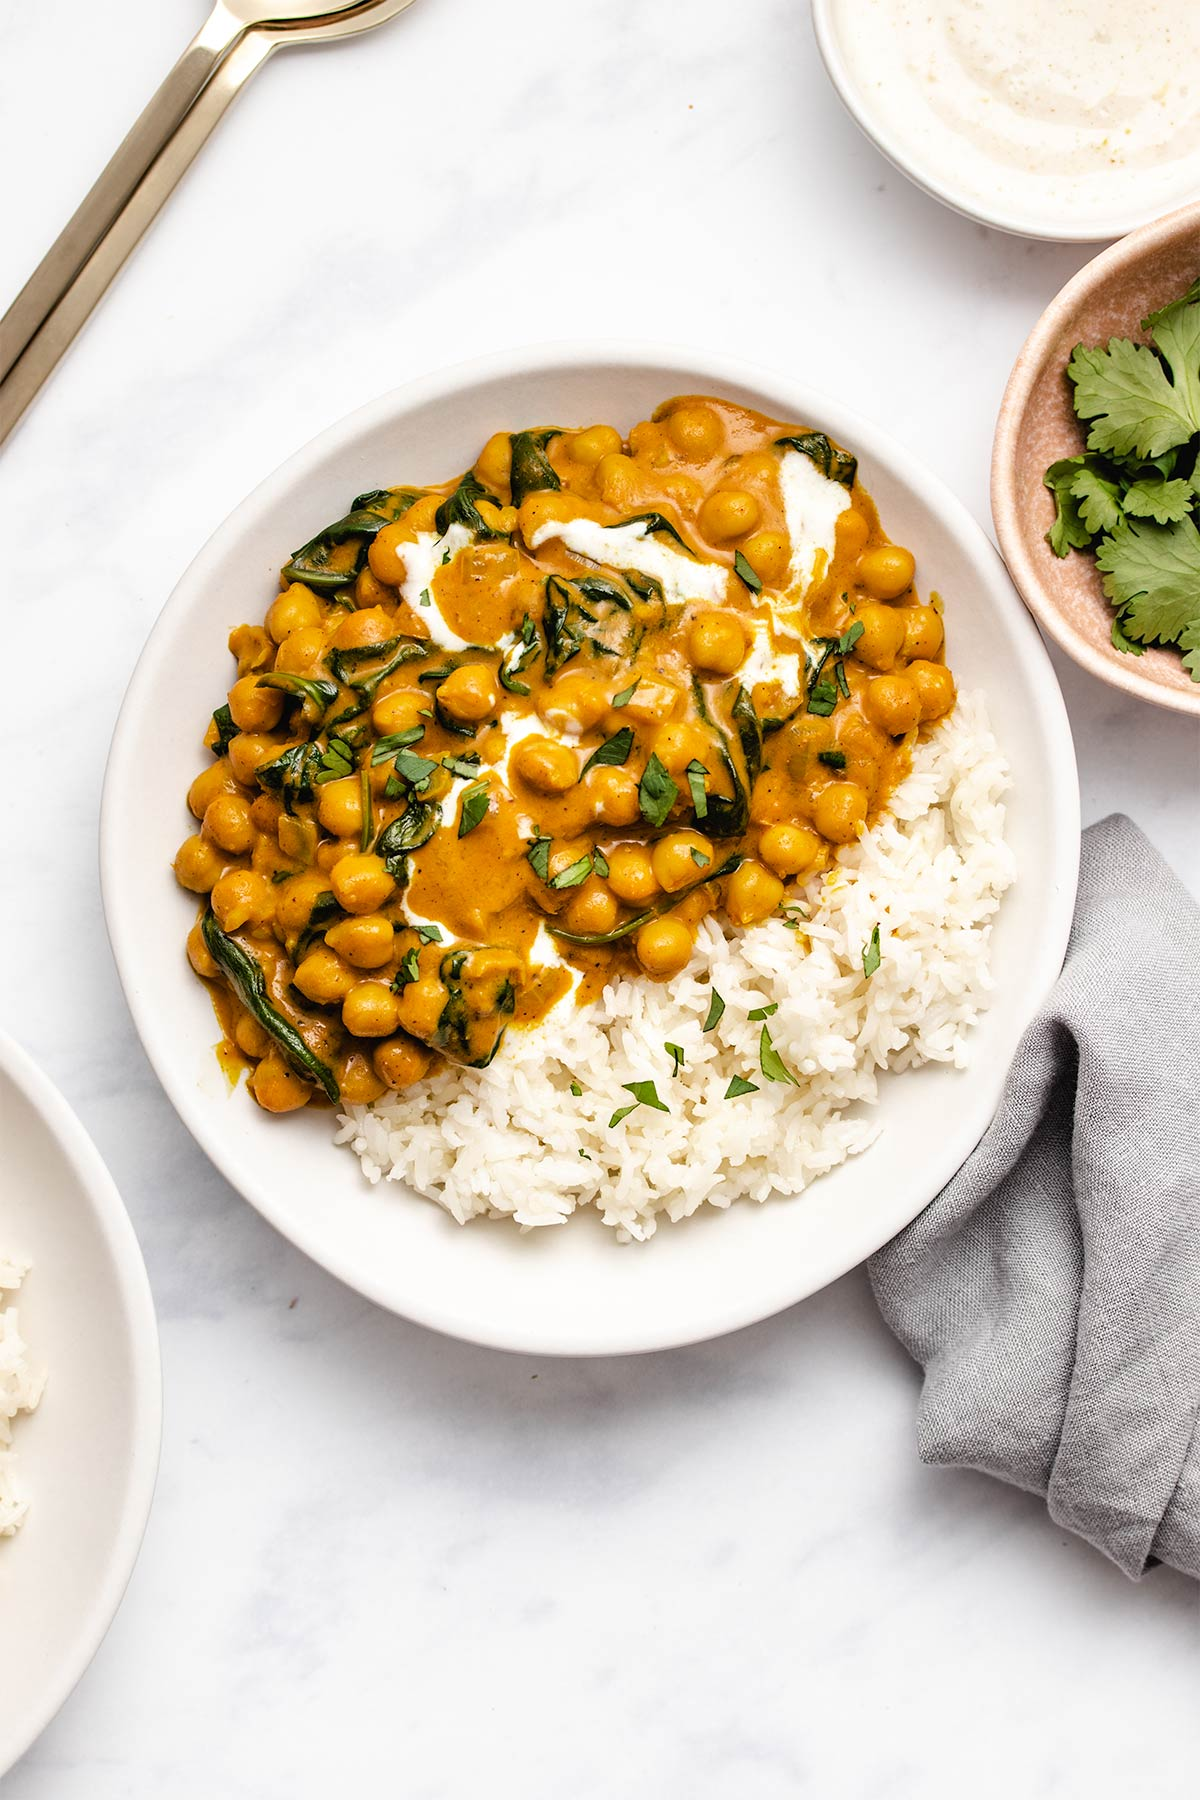 Chickpea spinach curry with a side of rice on a white plate garnished with chopped cilantro.